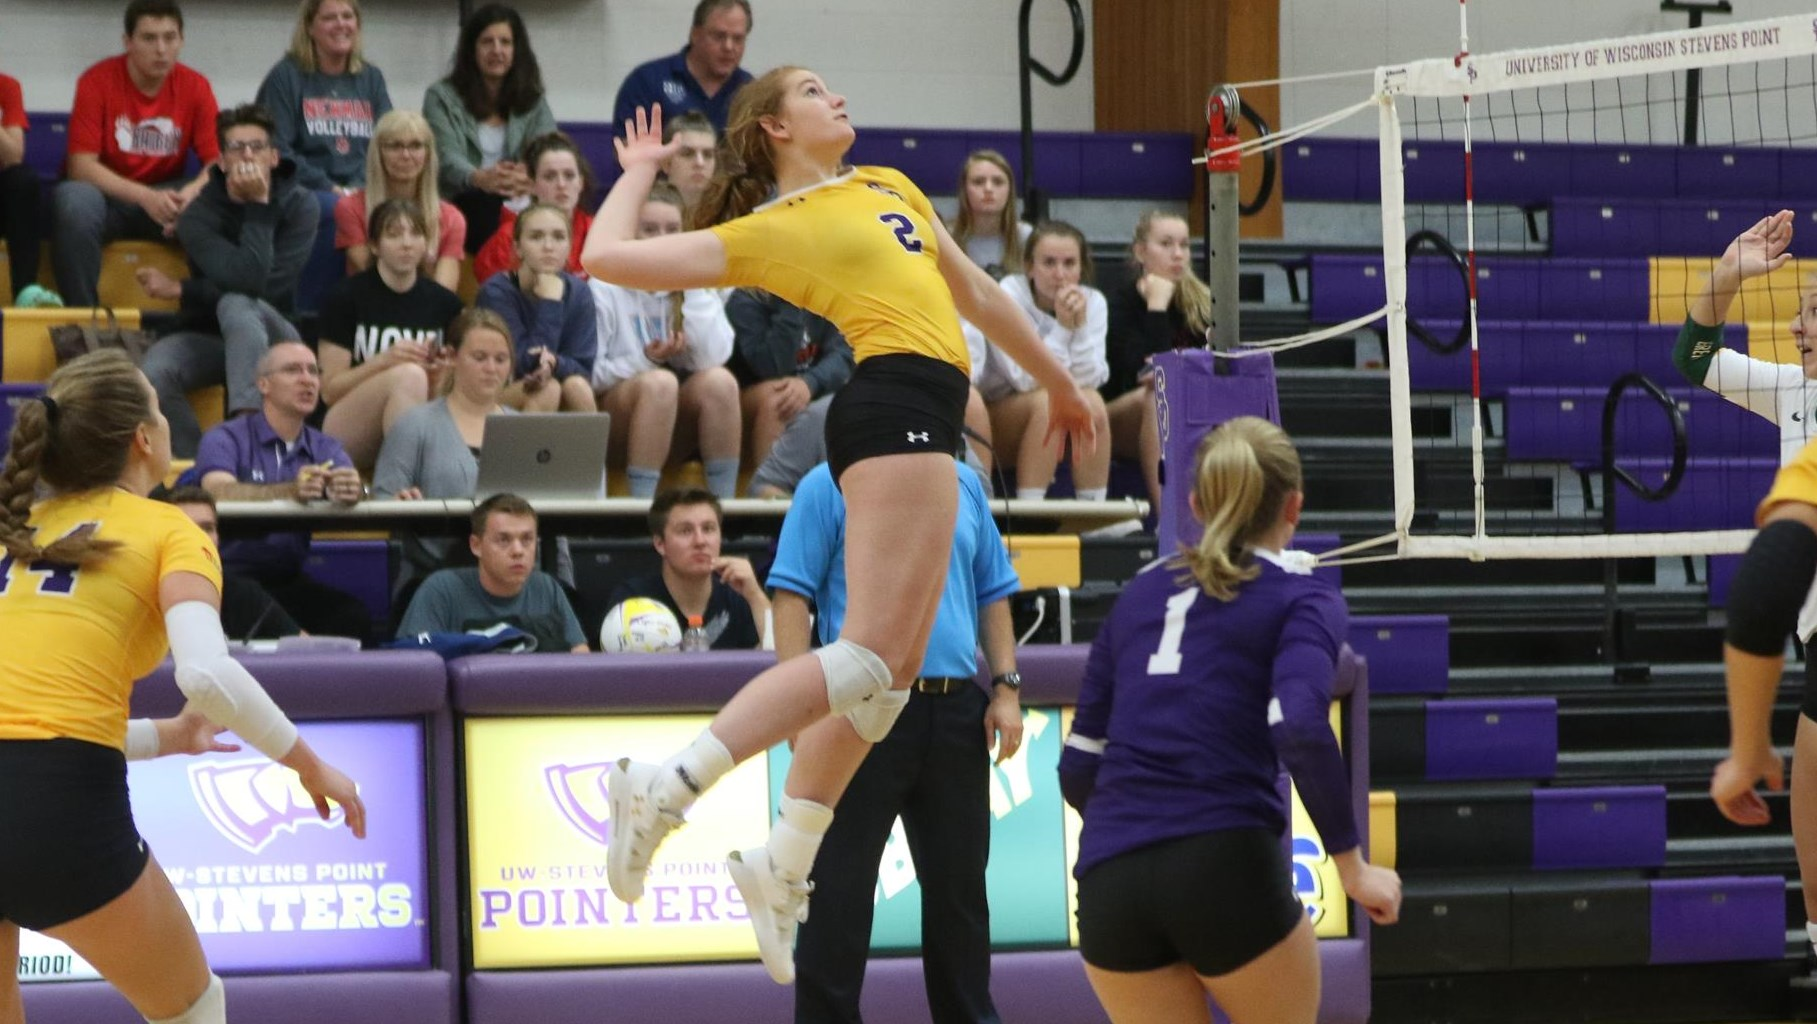 Pointers End Regular Season With Big Five Set Victory At Uww University Of Wisconsin Stevens Point Athletics